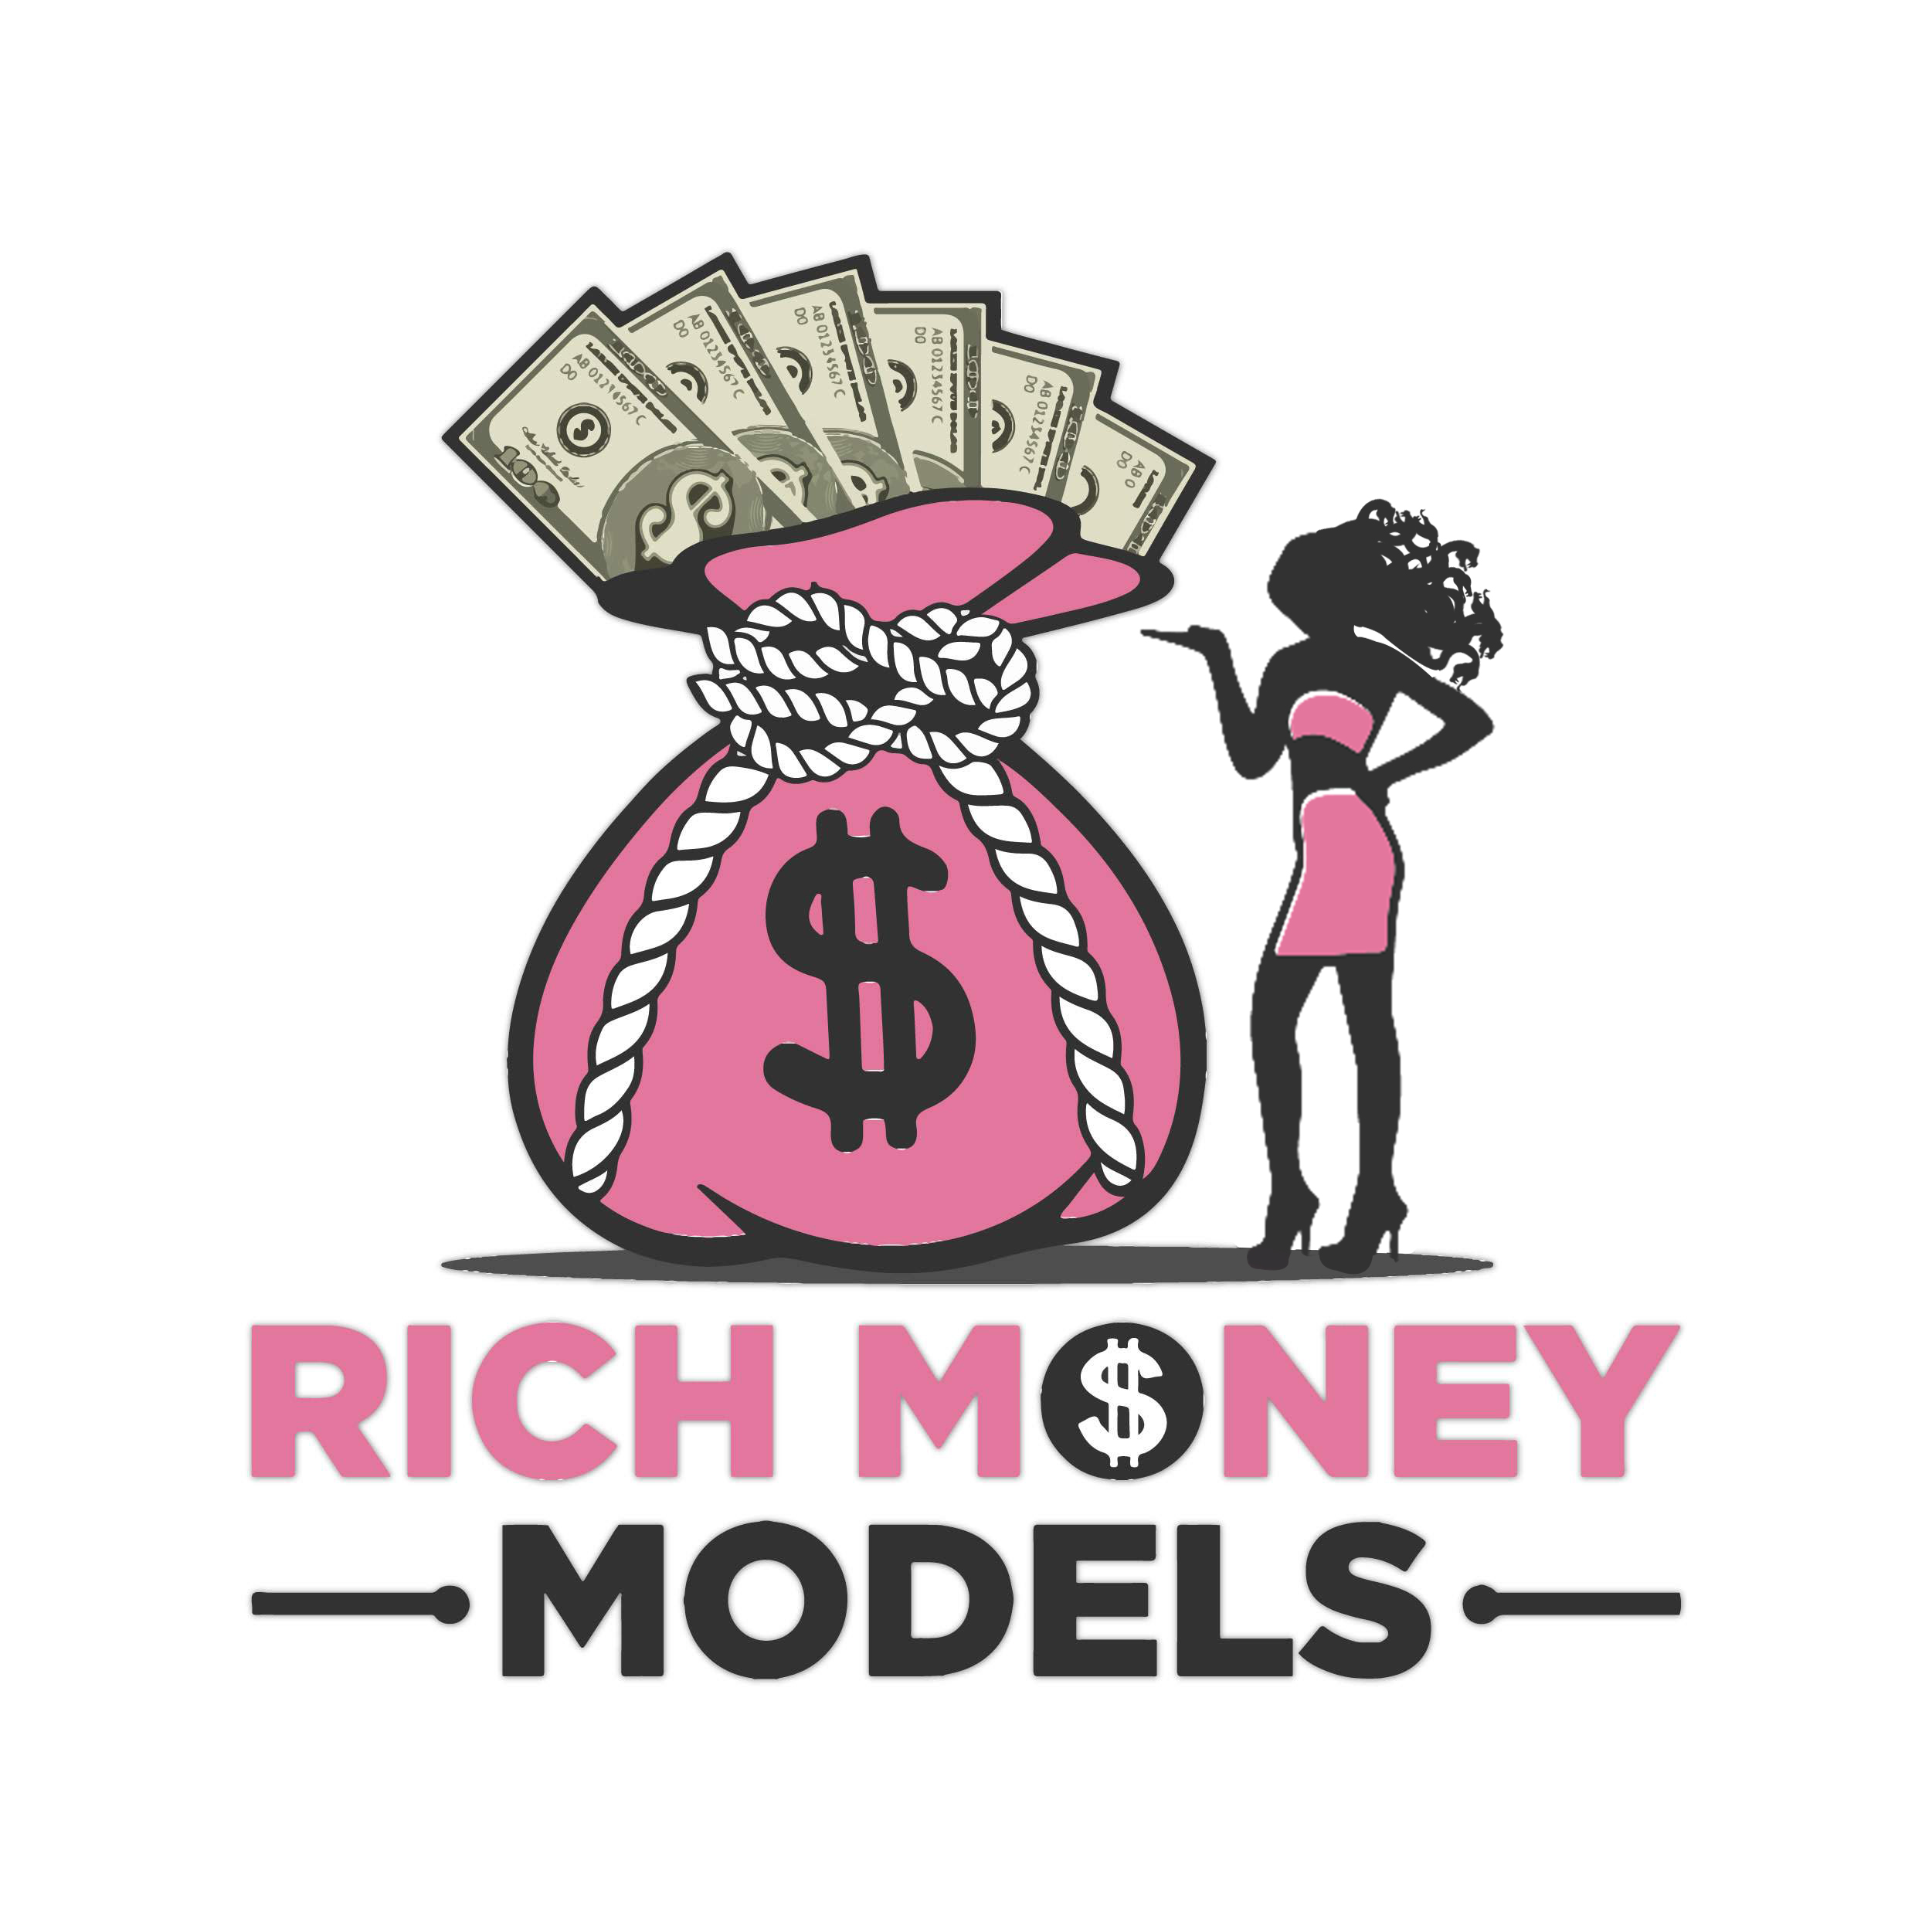 //richmoneymodels.com/wp-content/uploads/2020/10/al-1.jpg